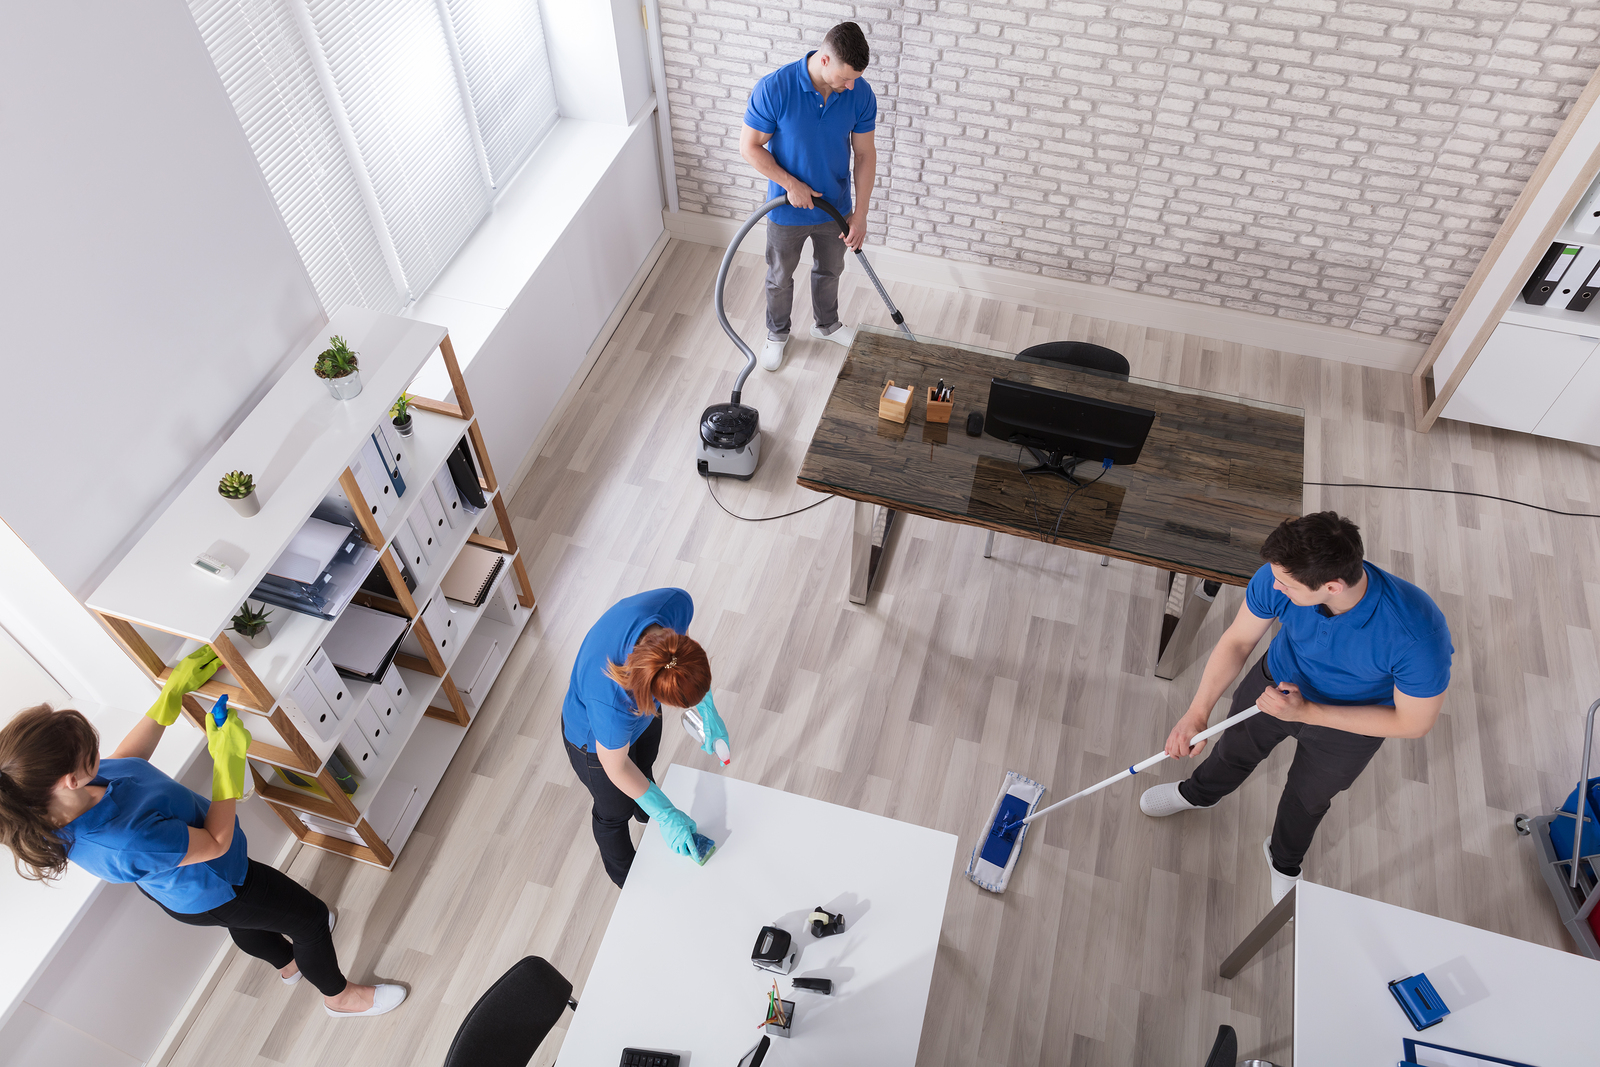 ... Preferred Products, State Of The Art Equipment And Unique Cleaning  Process Provide Customers An Affordable Line Of Unmatched Home Cleaning  Services.